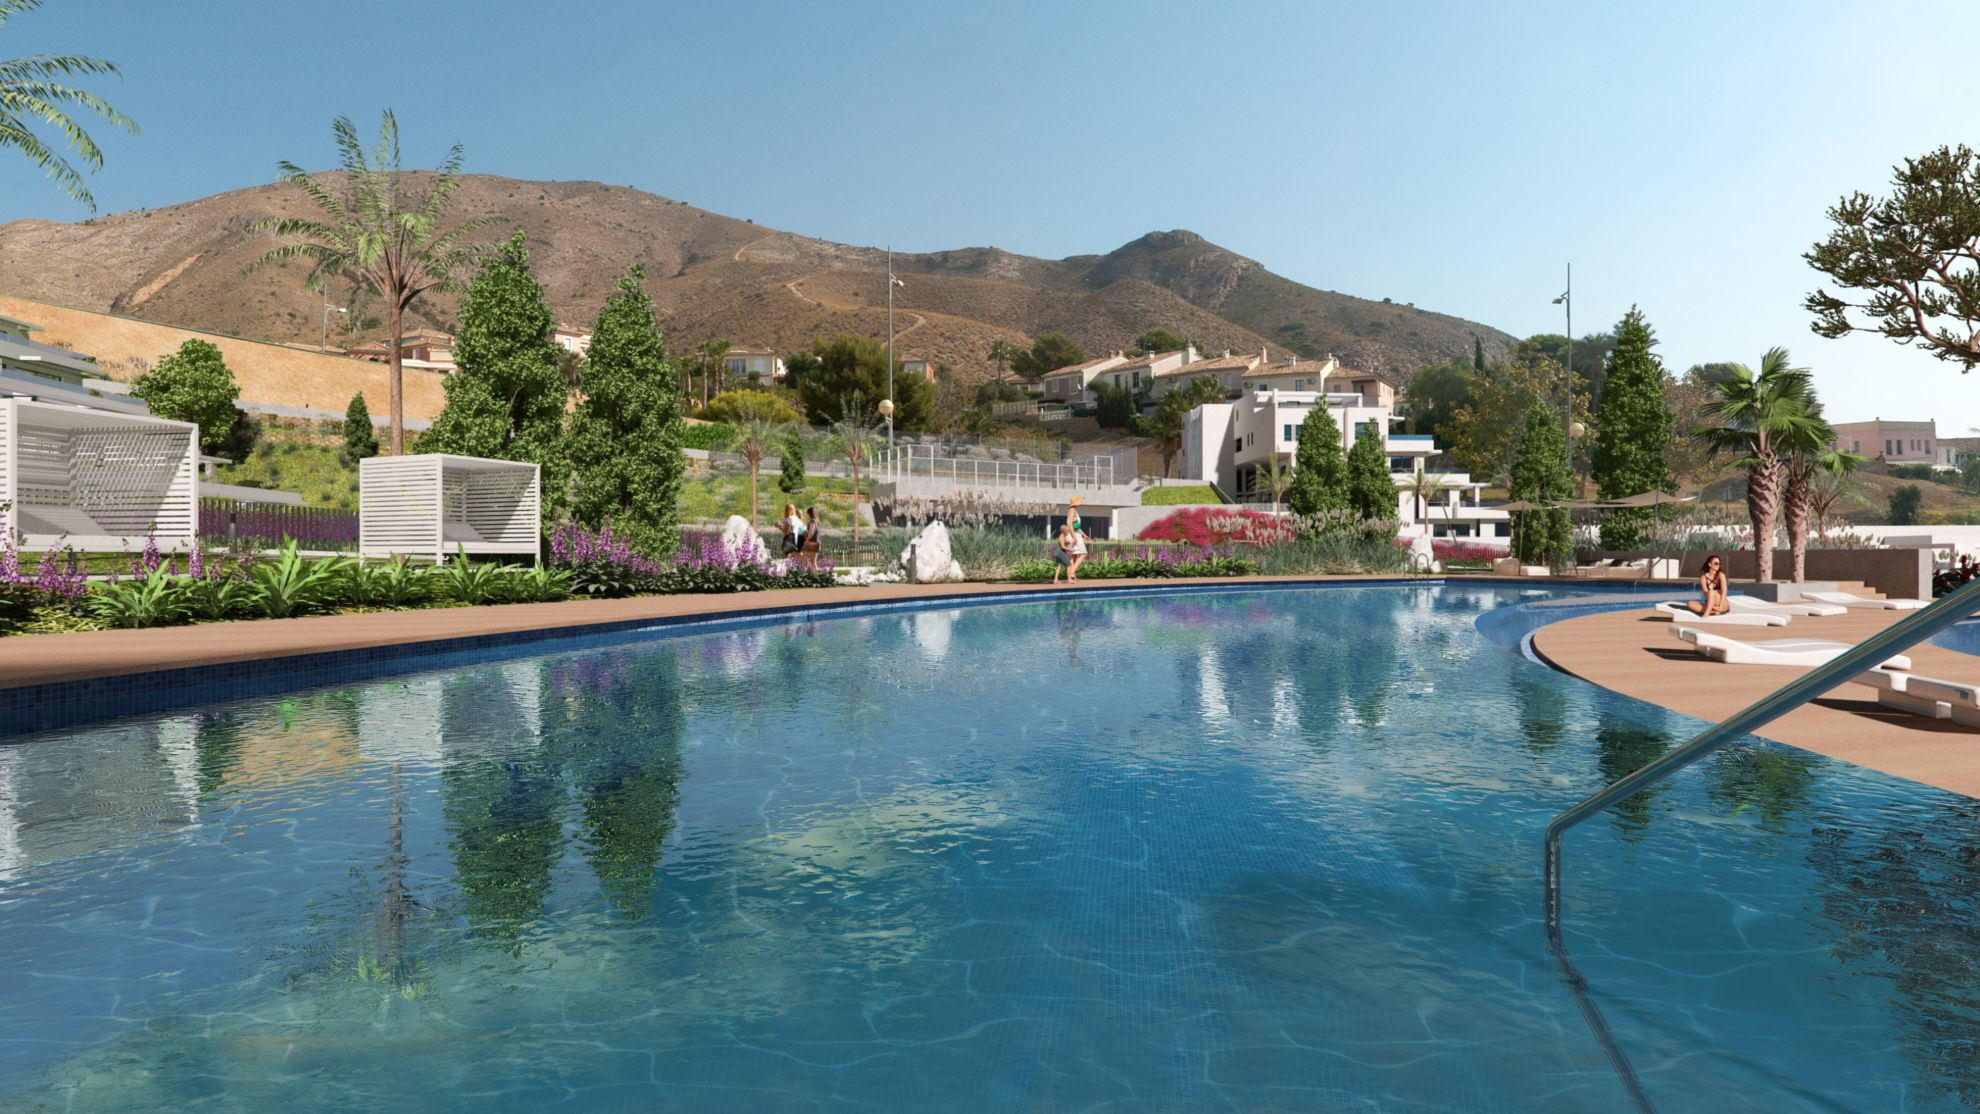 3 bedroom detached and semi-detached villas with private pool overlooking the sea in Finestrat 4